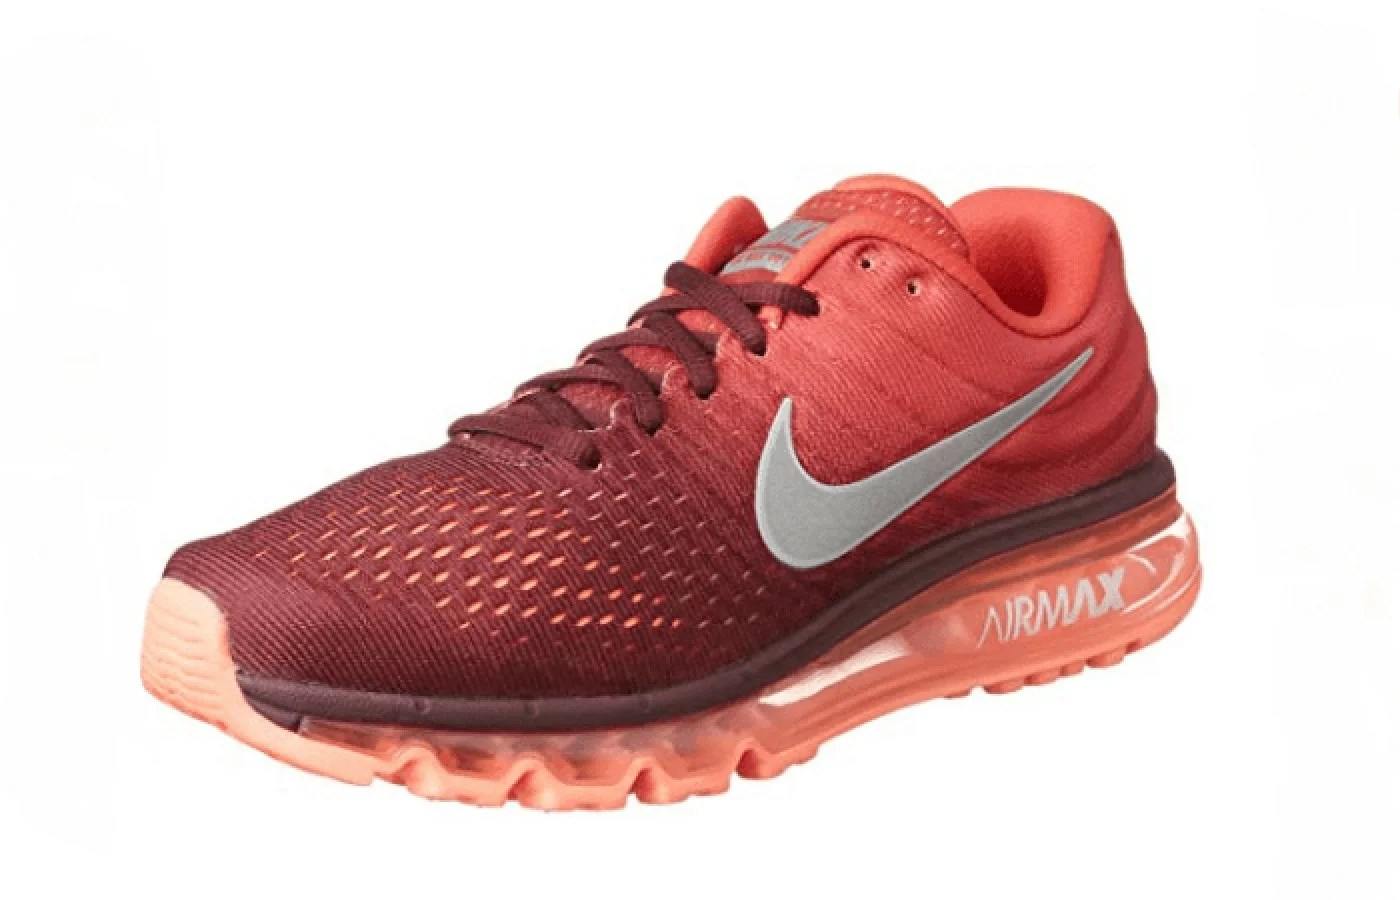 Air Max Running Nike Air Max 2019 Reviewed Rated For Quality